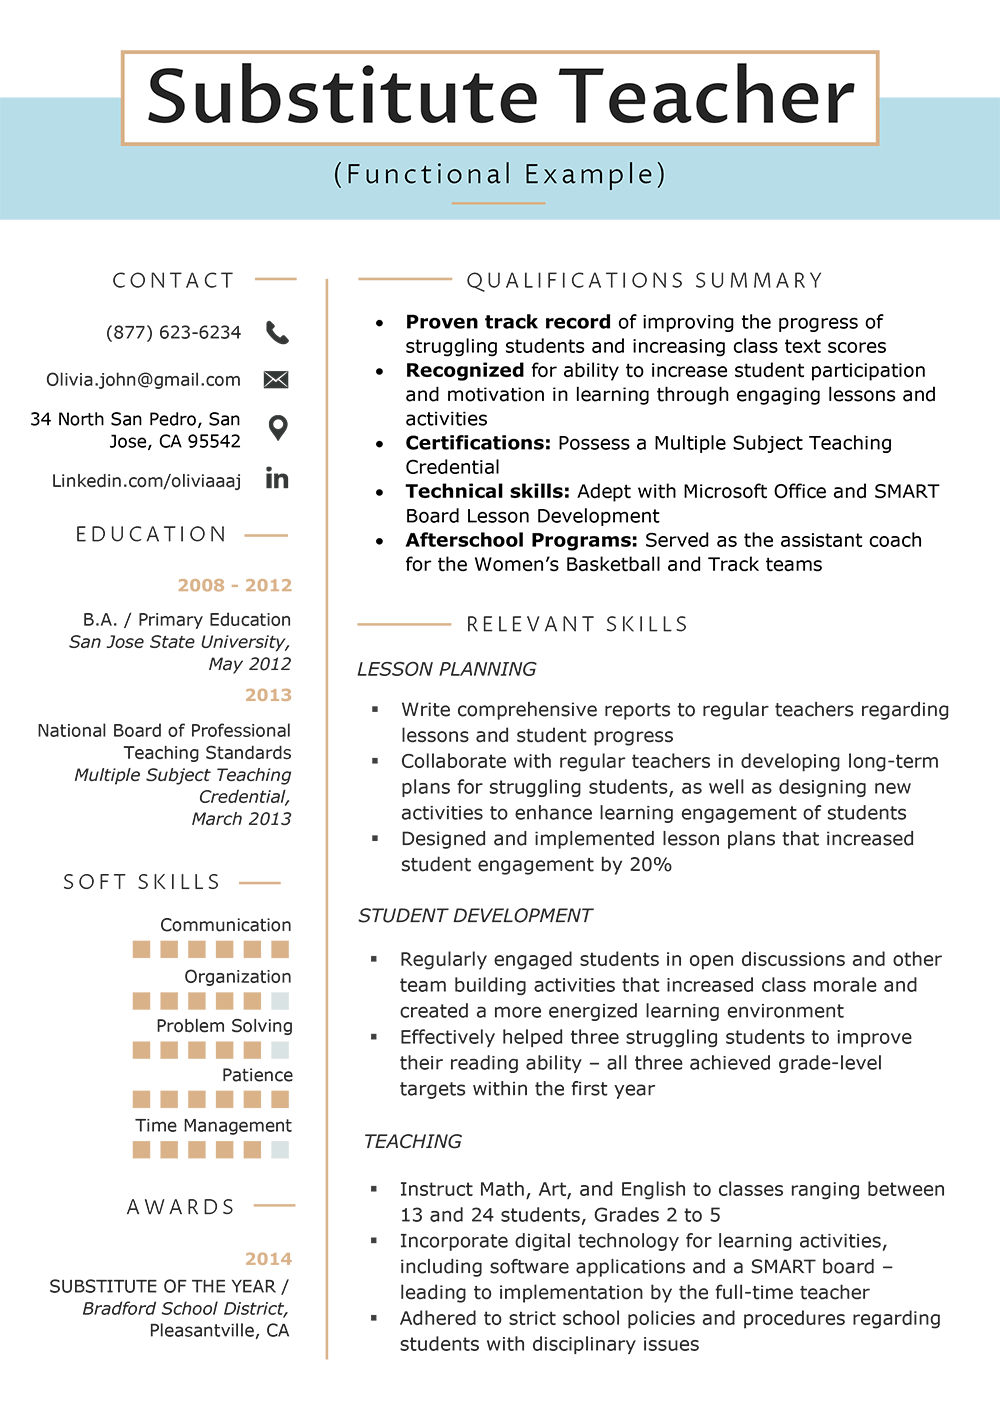 Resume Tips Skills The Functional Resume Template Examples Writing Guide Rg